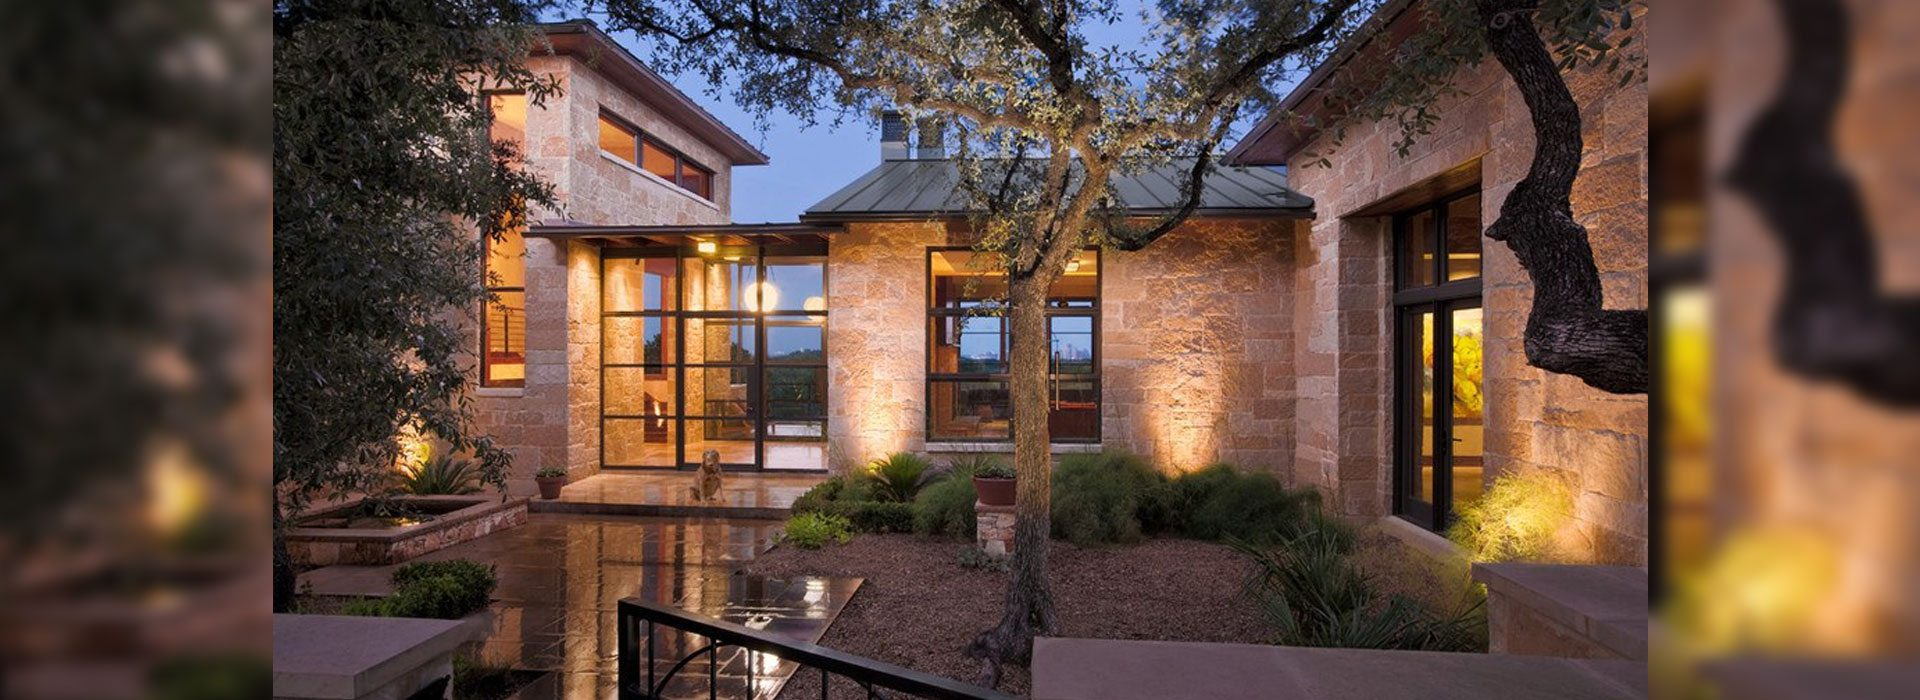 Glass Wall Systems | Residential Glass Products | Anchor-Ventana Glass Company | Austin, TX Glass